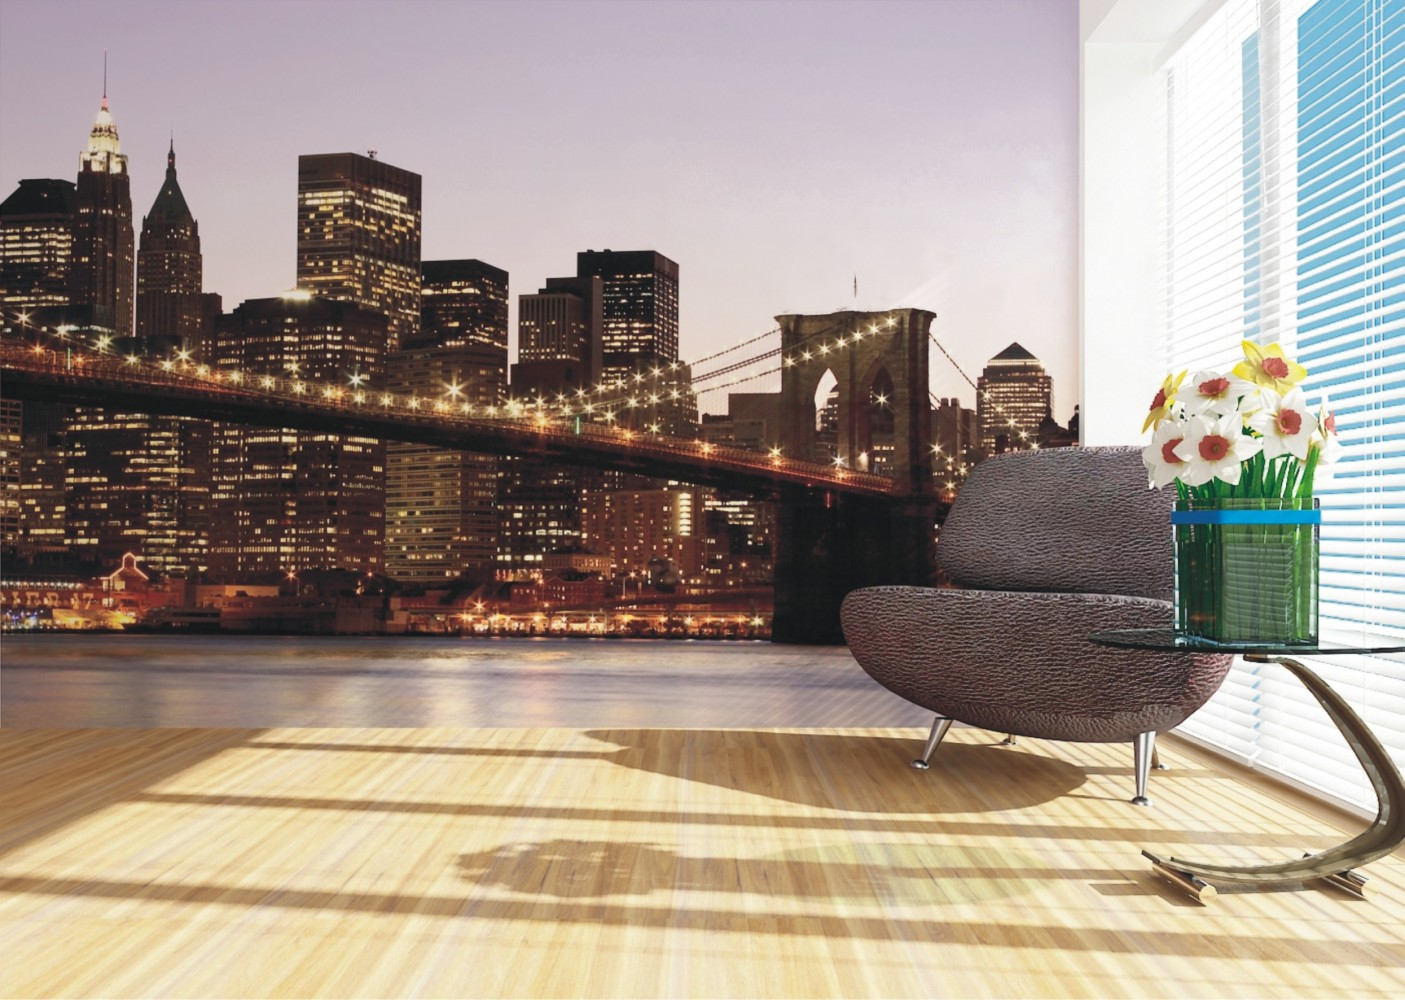 Wall mural wallpaper brooklyn bridge new york skyline nyc for Brooklyn bridge wallpaper mural